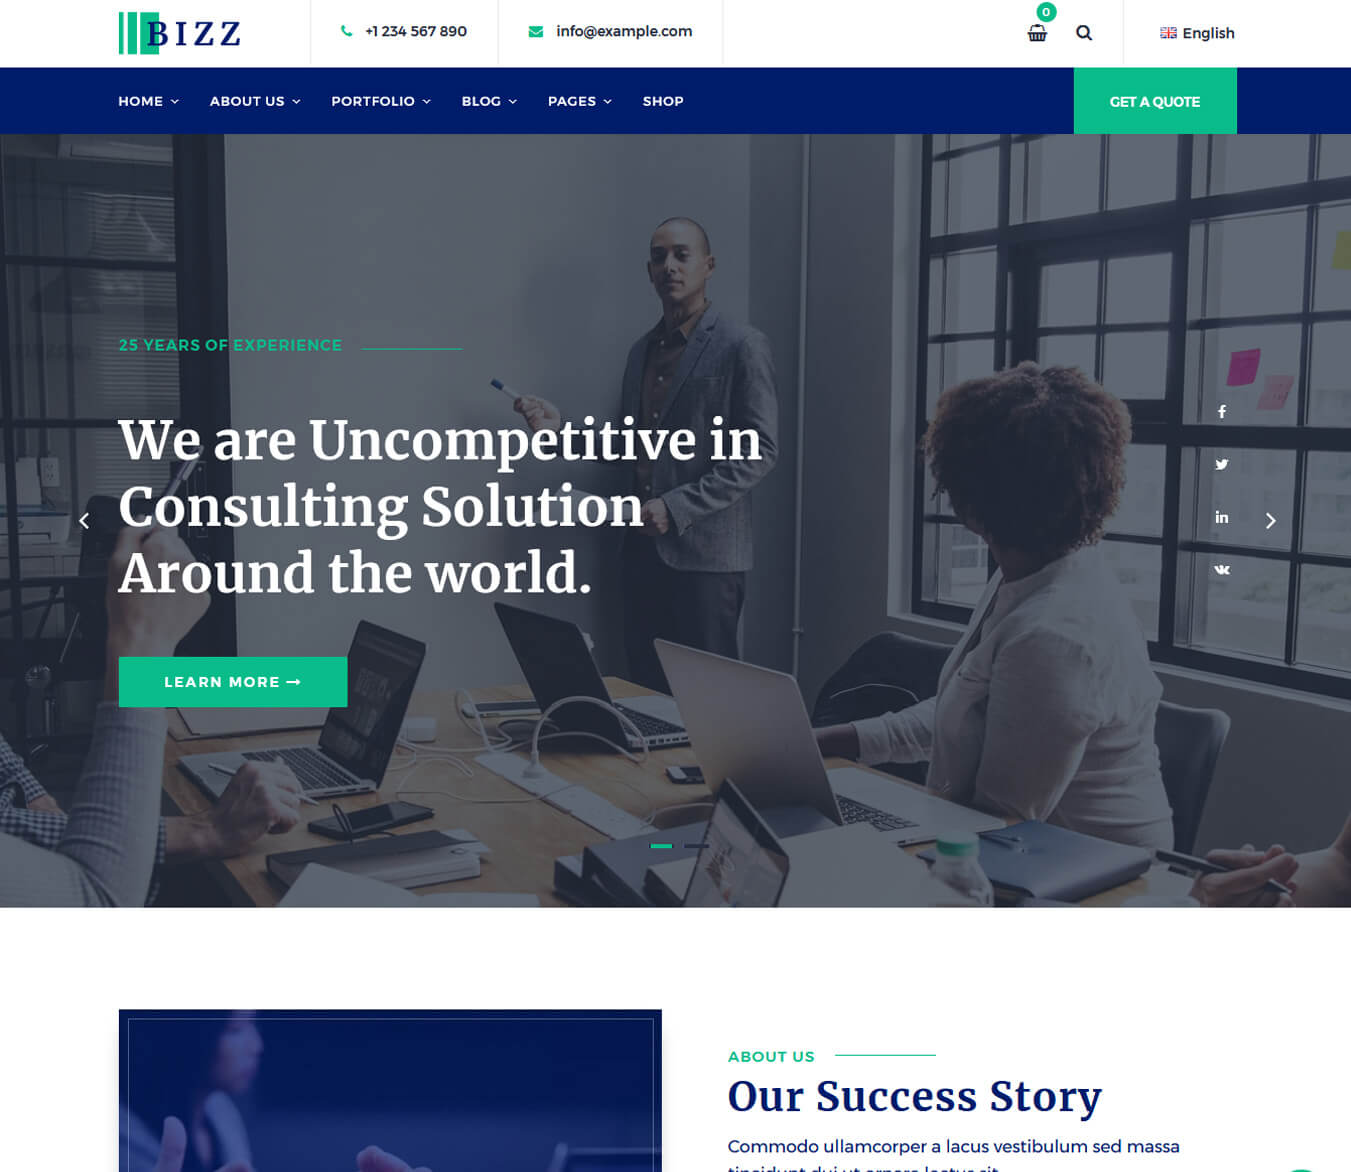 Bizz - Business Consulting and Professional Services